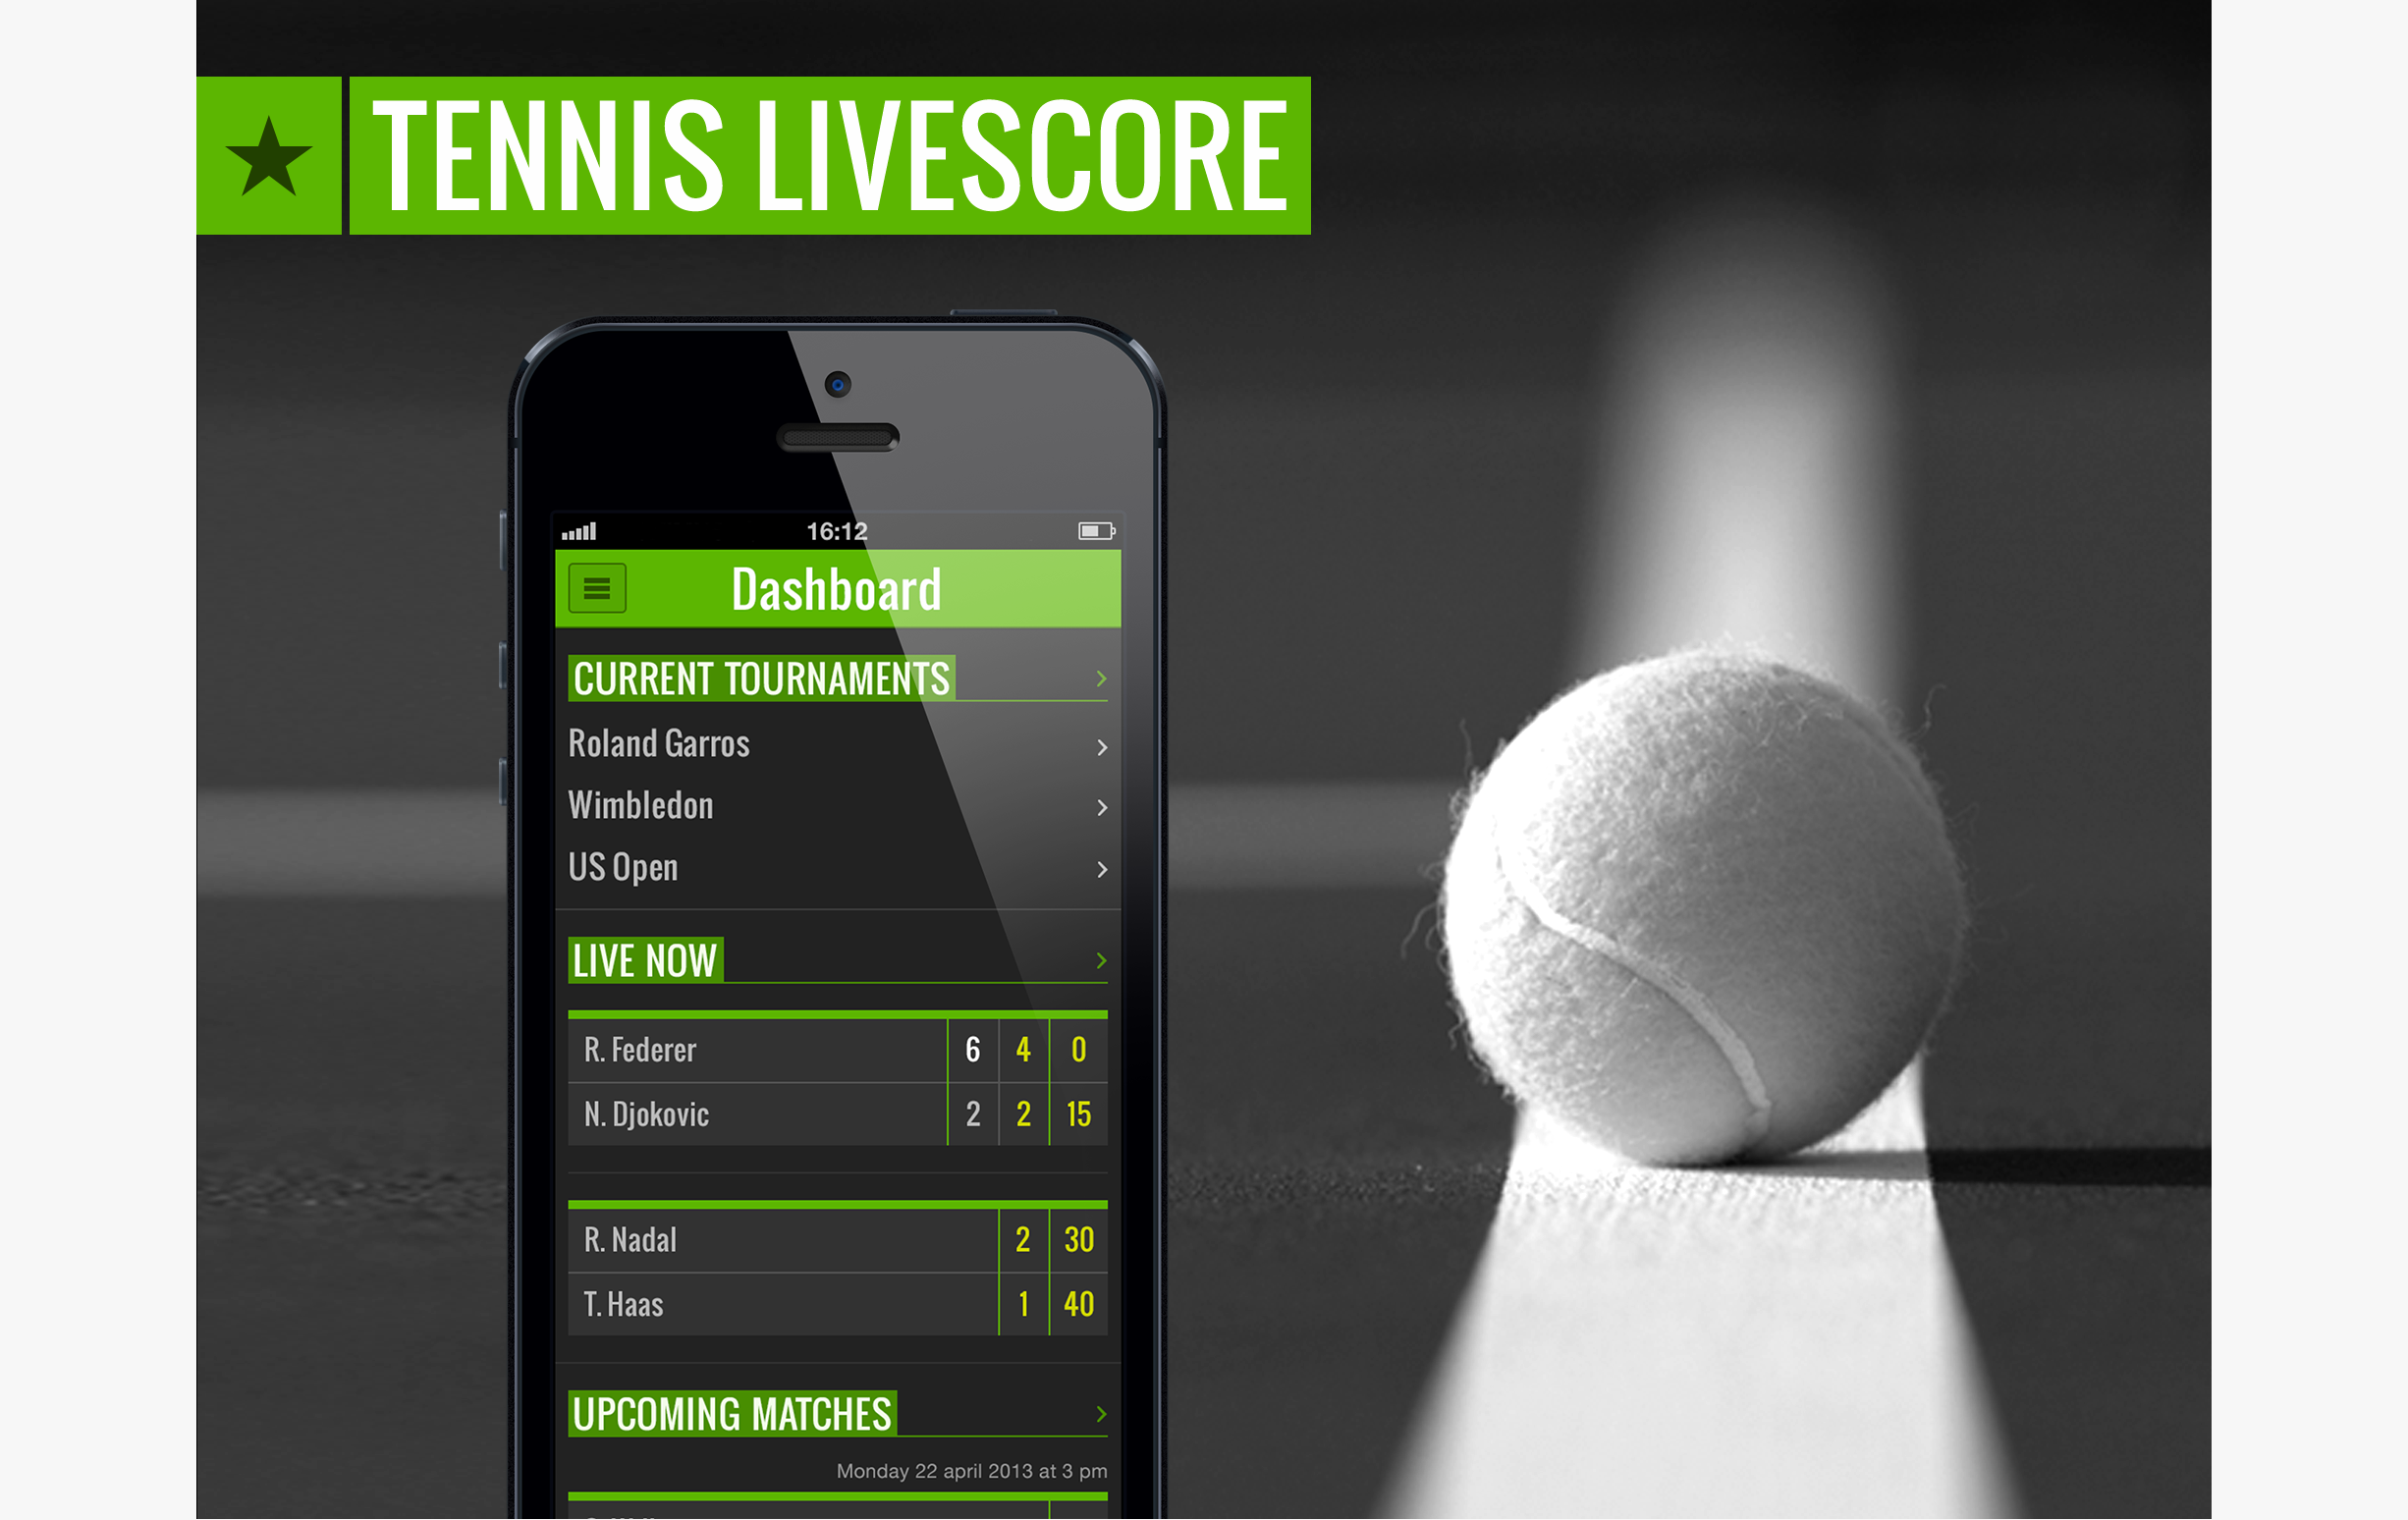 Tennis livescore - header - dashboard